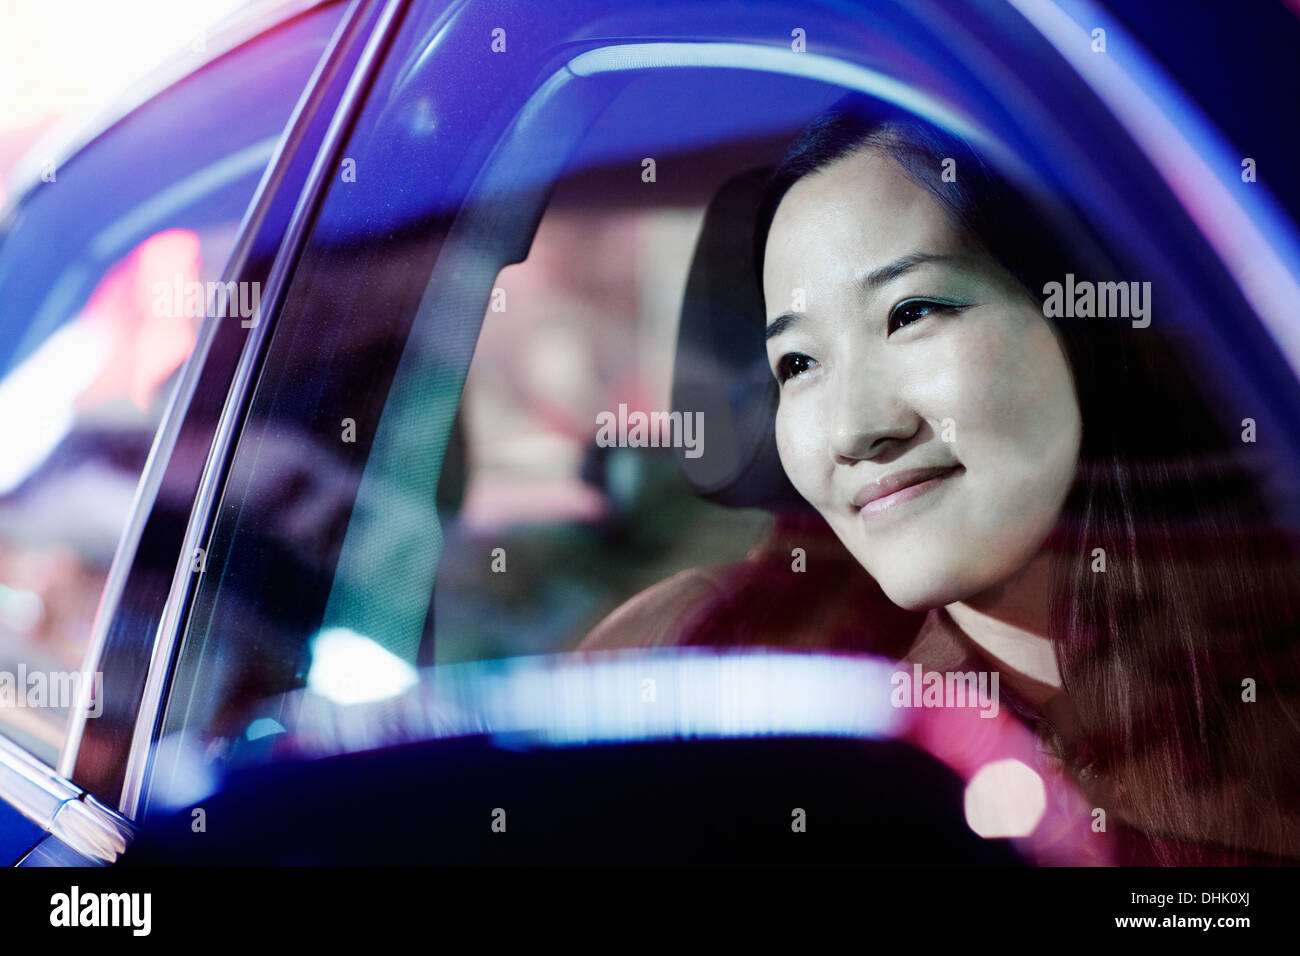 Smiling woman looking through car window at the city nightlife, reflected lights Stock Photo